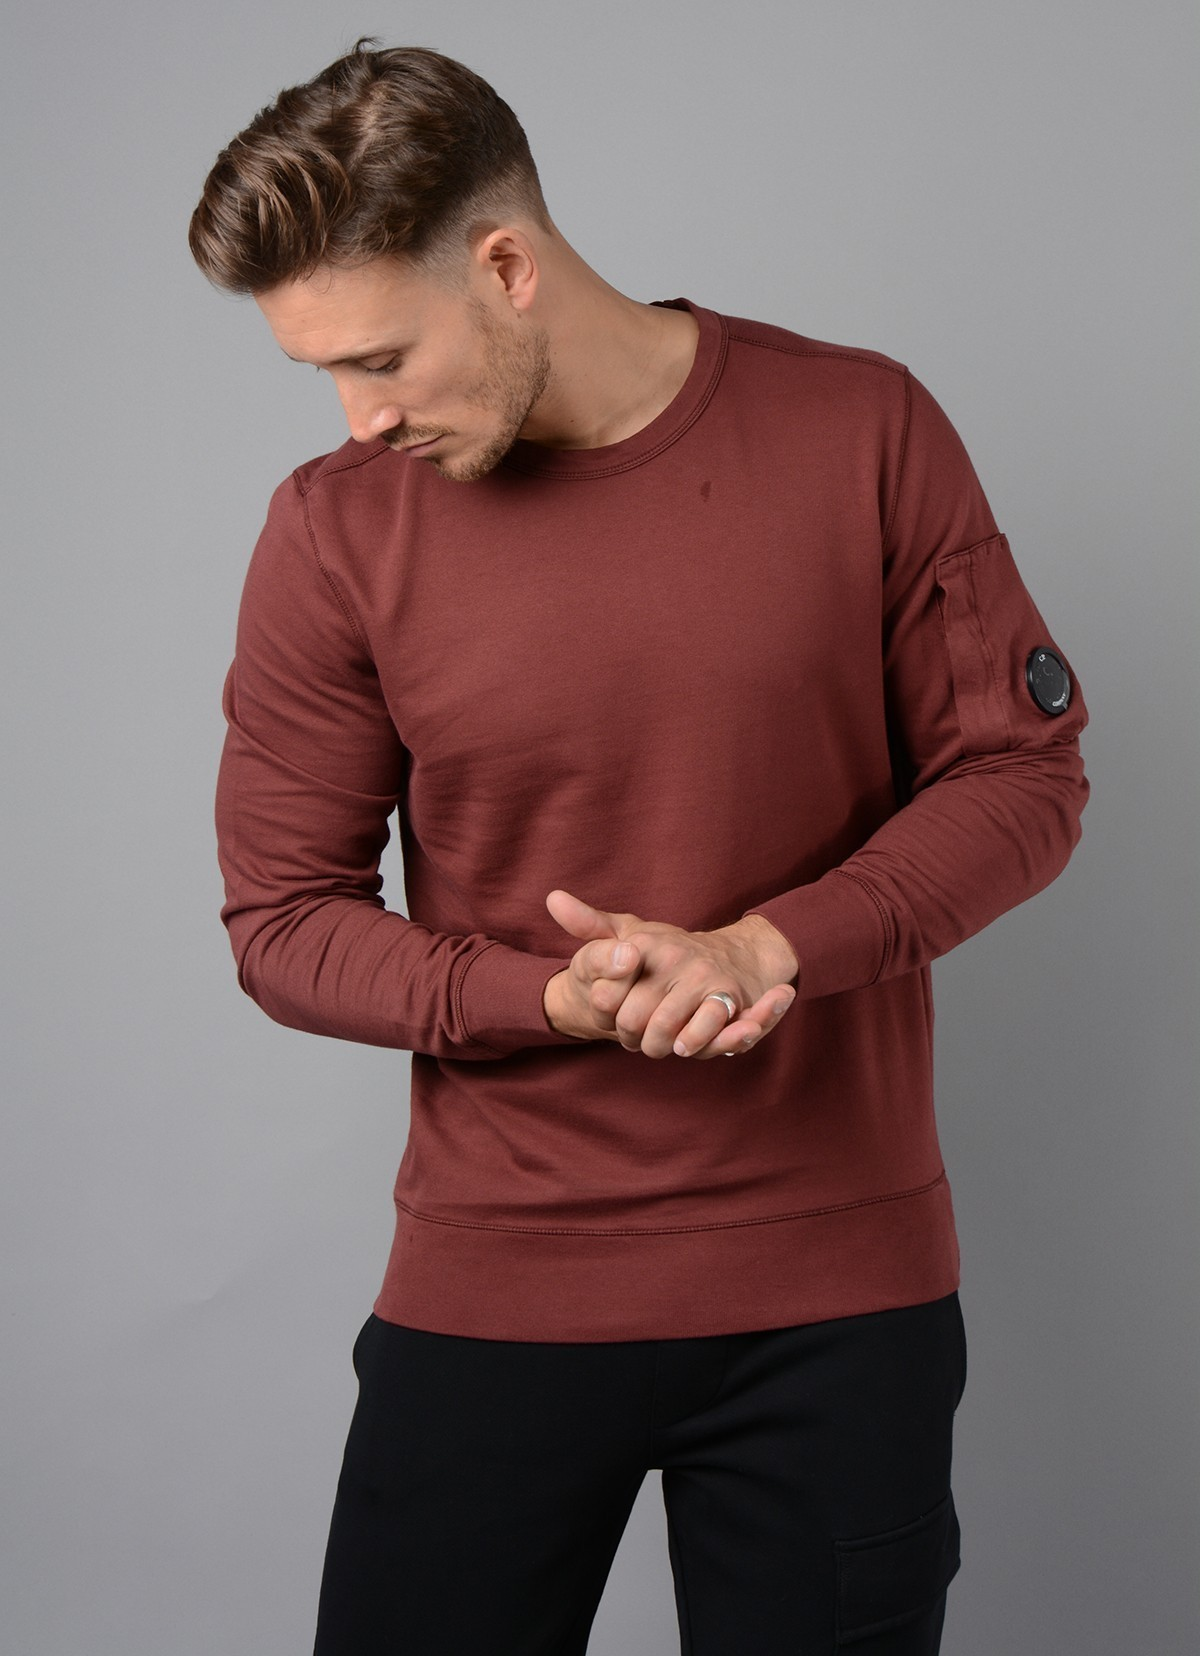 036A Garment Dyed Light Fleece Lens Sweatshirt in Burgundy